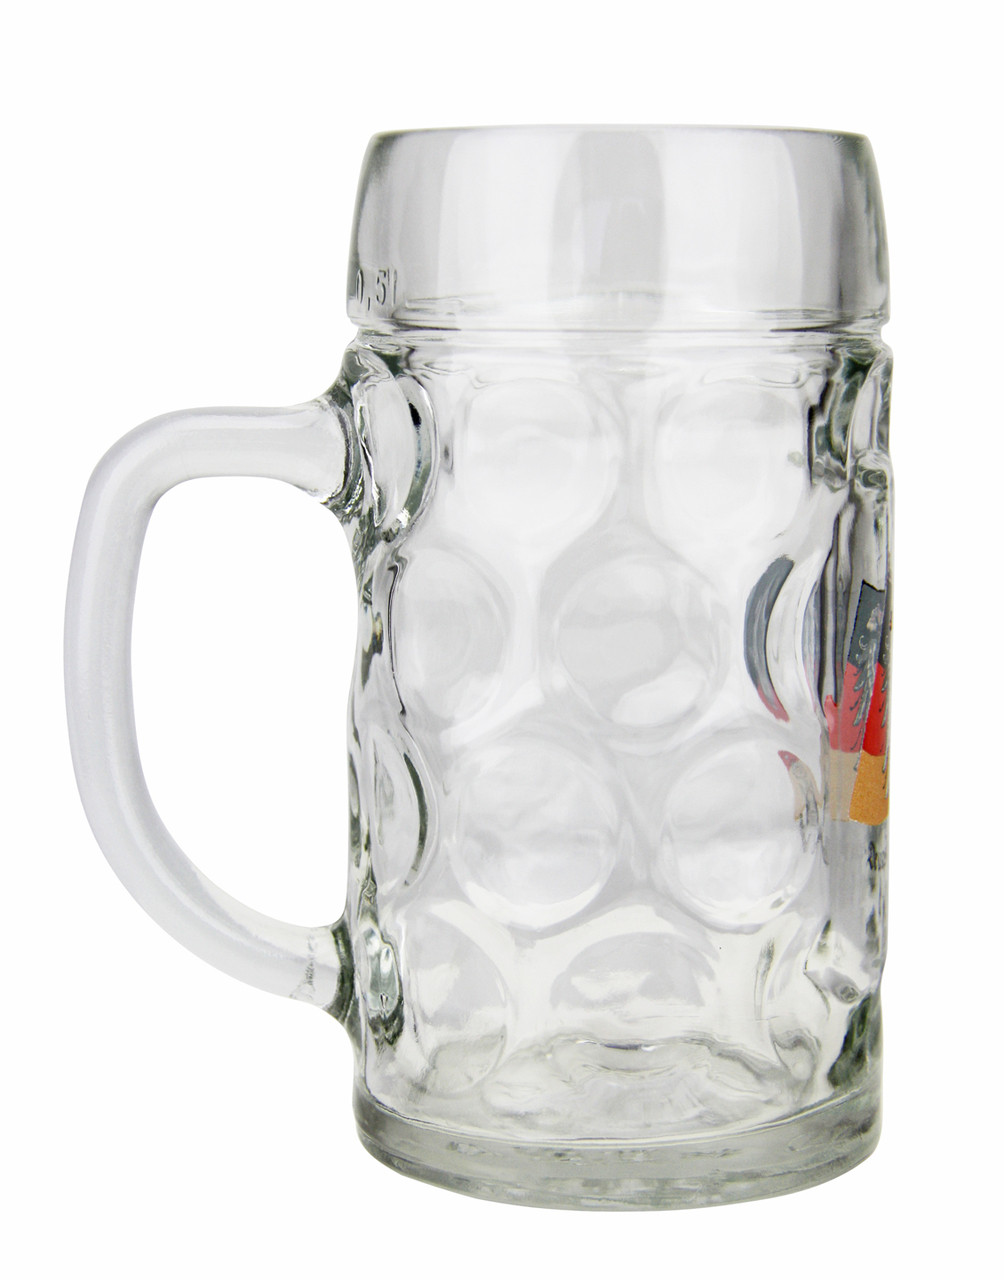 Authentic German Beer Stein with Eagle Crest